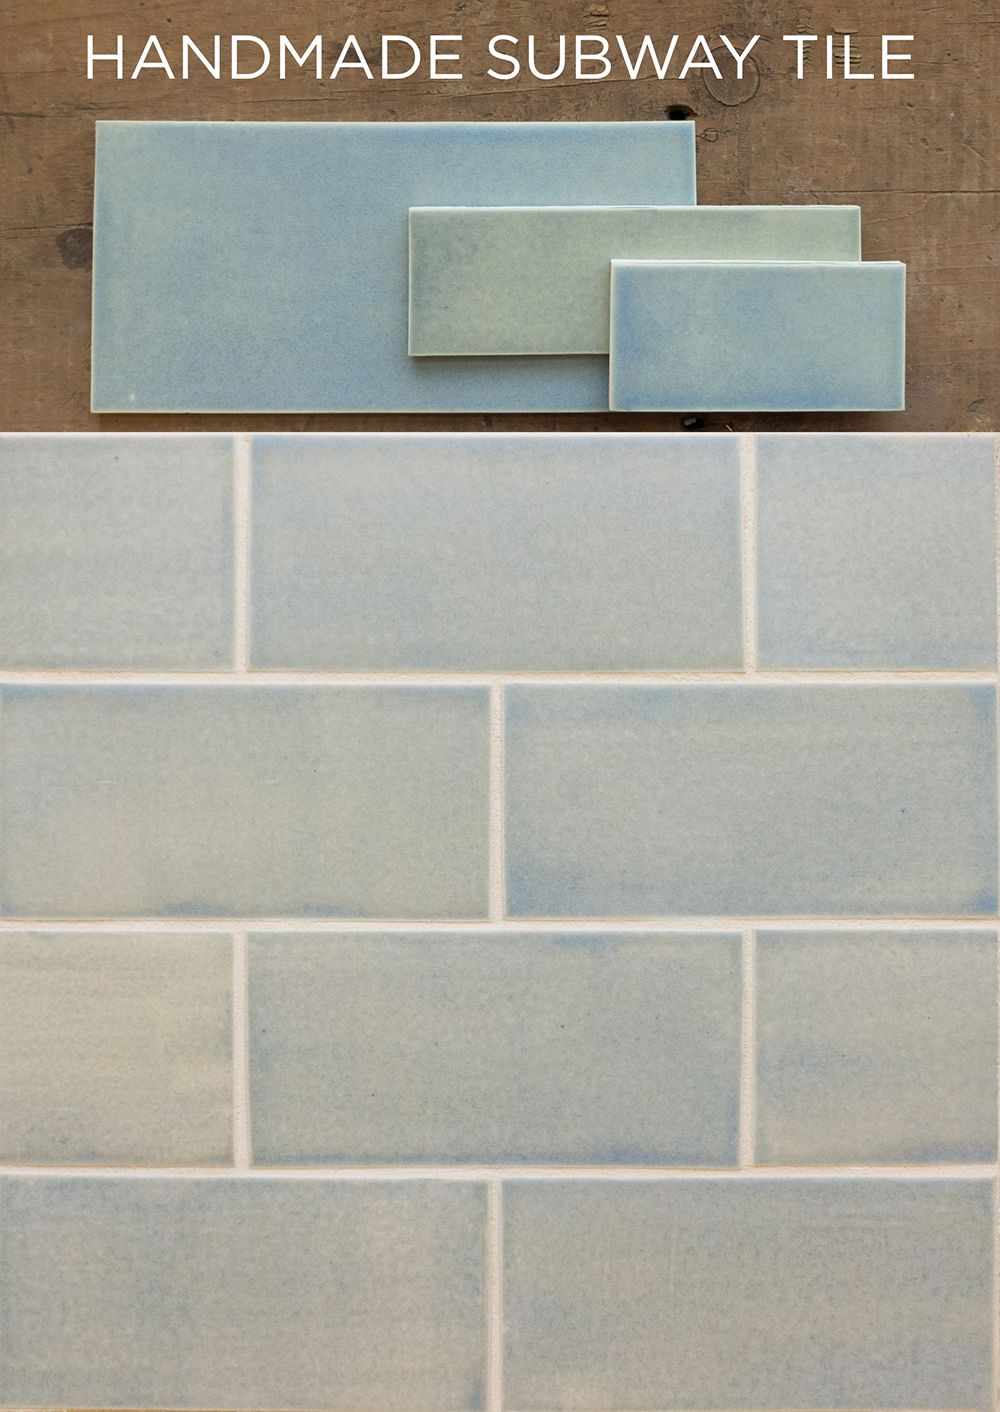 Handmade subway tile made in usa by mercury mosaics the perfect handmade subway tile made in usa by mercury mosaics the perfect solution for your dailygadgetfo Choice Image